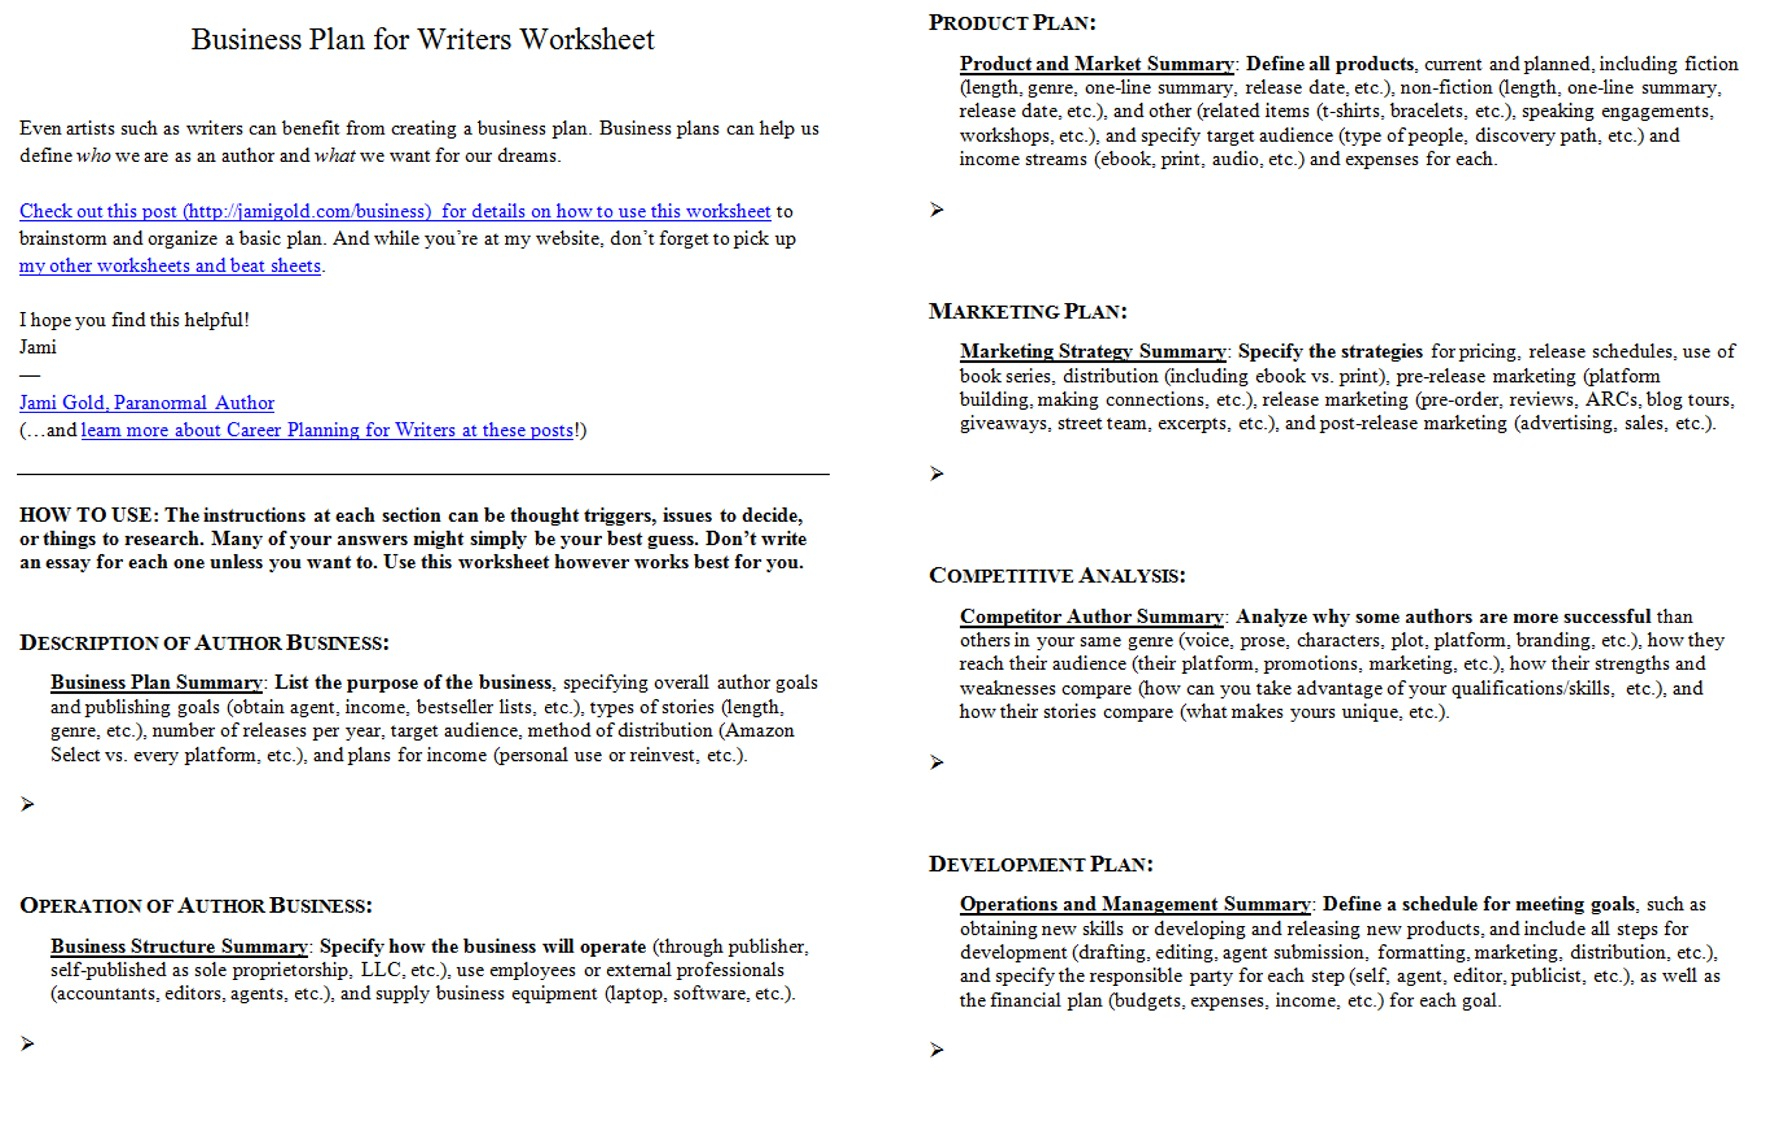 Proatmealus  Pleasing Worksheets For Writers  Jami Gold Paranormal Author With Heavenly Screen Shot Of Both Pages Of The Business Plan For Writers Worksheet With Cute Making Inferences Practice Worksheets Also Describing People Appearance Worksheet In Addition Algebra Patterns Worksheet And Order Of Operations With Brackets And Braces Worksheet As Well As Nouns Worksheet For Grade  Additionally Mental Maths Worksheets For Grade  From Jamigoldcom With Proatmealus  Heavenly Worksheets For Writers  Jami Gold Paranormal Author With Cute Screen Shot Of Both Pages Of The Business Plan For Writers Worksheet And Pleasing Making Inferences Practice Worksheets Also Describing People Appearance Worksheet In Addition Algebra Patterns Worksheet From Jamigoldcom